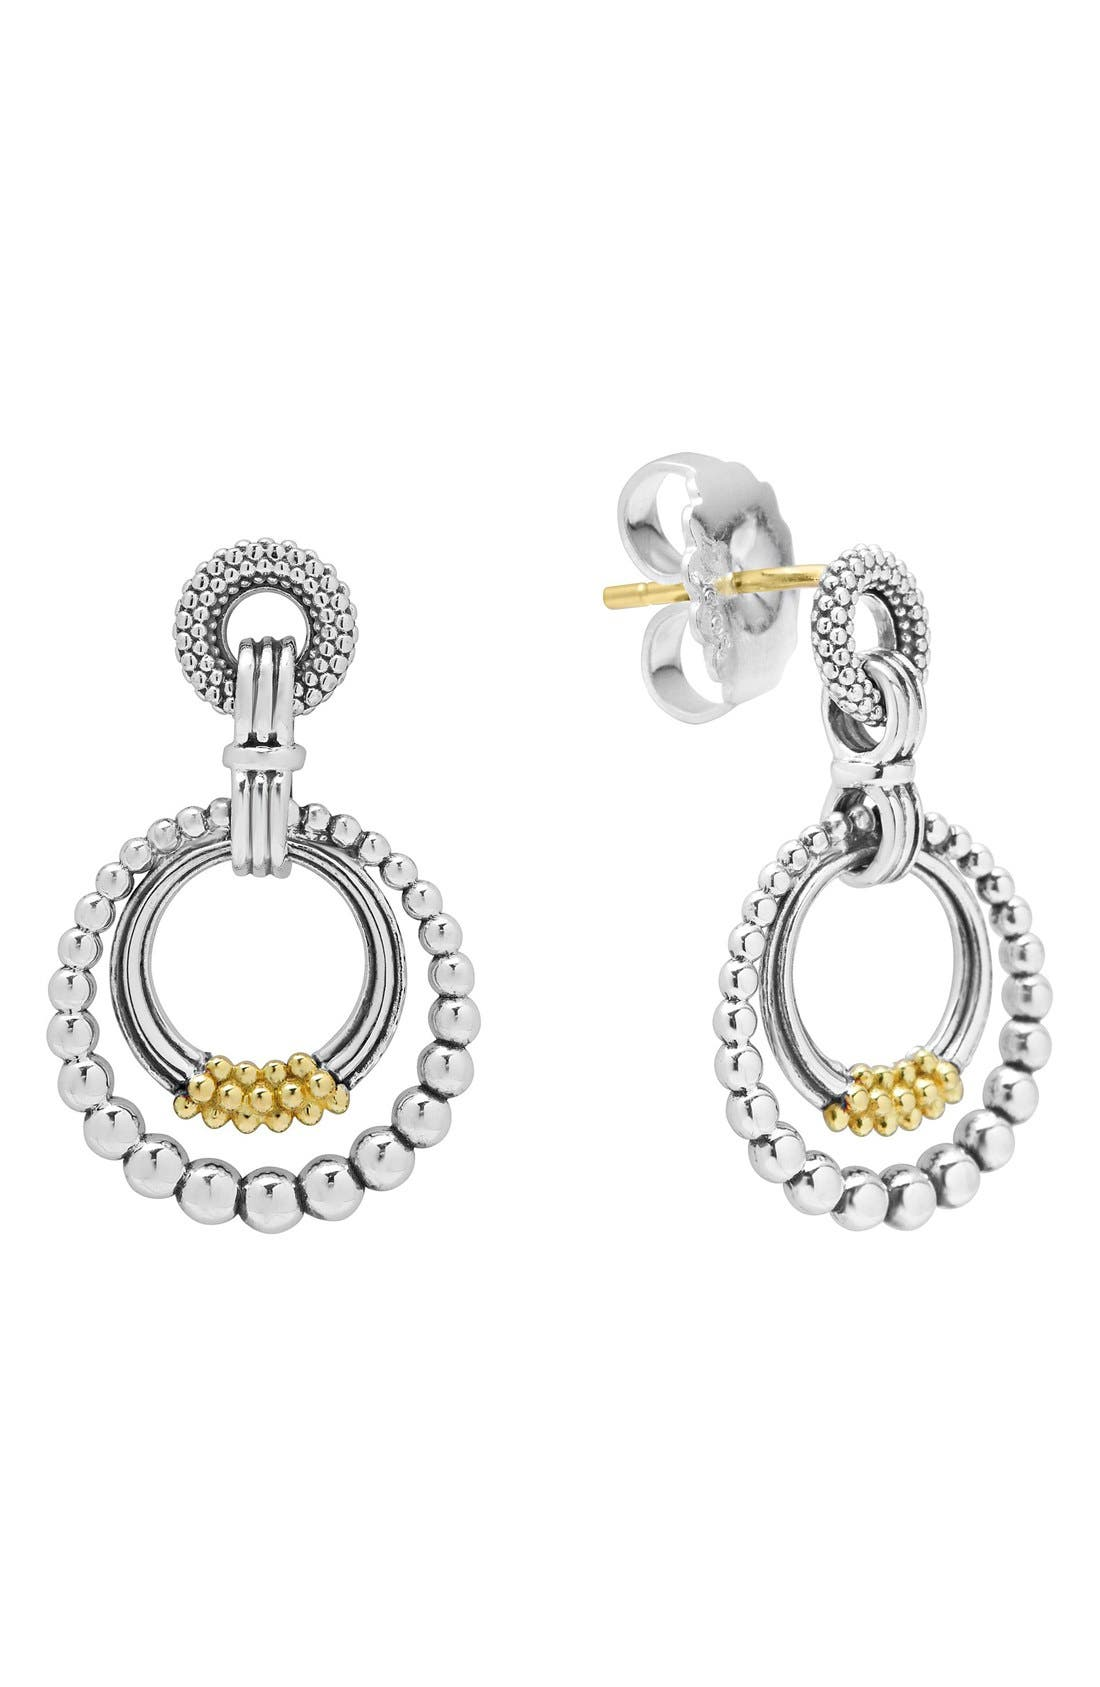 LAGOS Caviar 'Superfine' Two-Tone Door Knocker Earrings